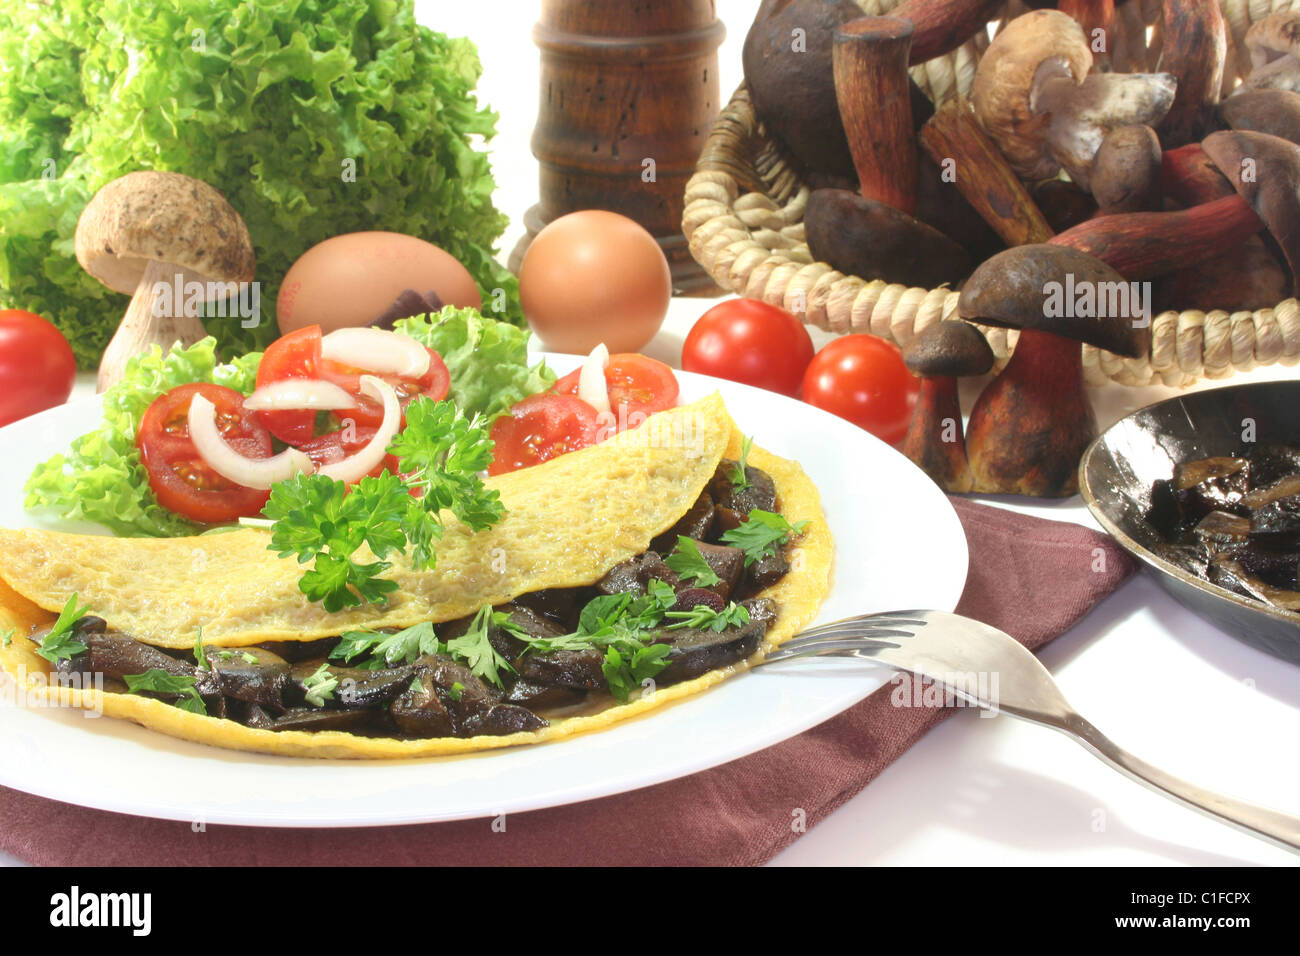 an omelet stuffed with wild mushrooms and fresh salad - Stock Image